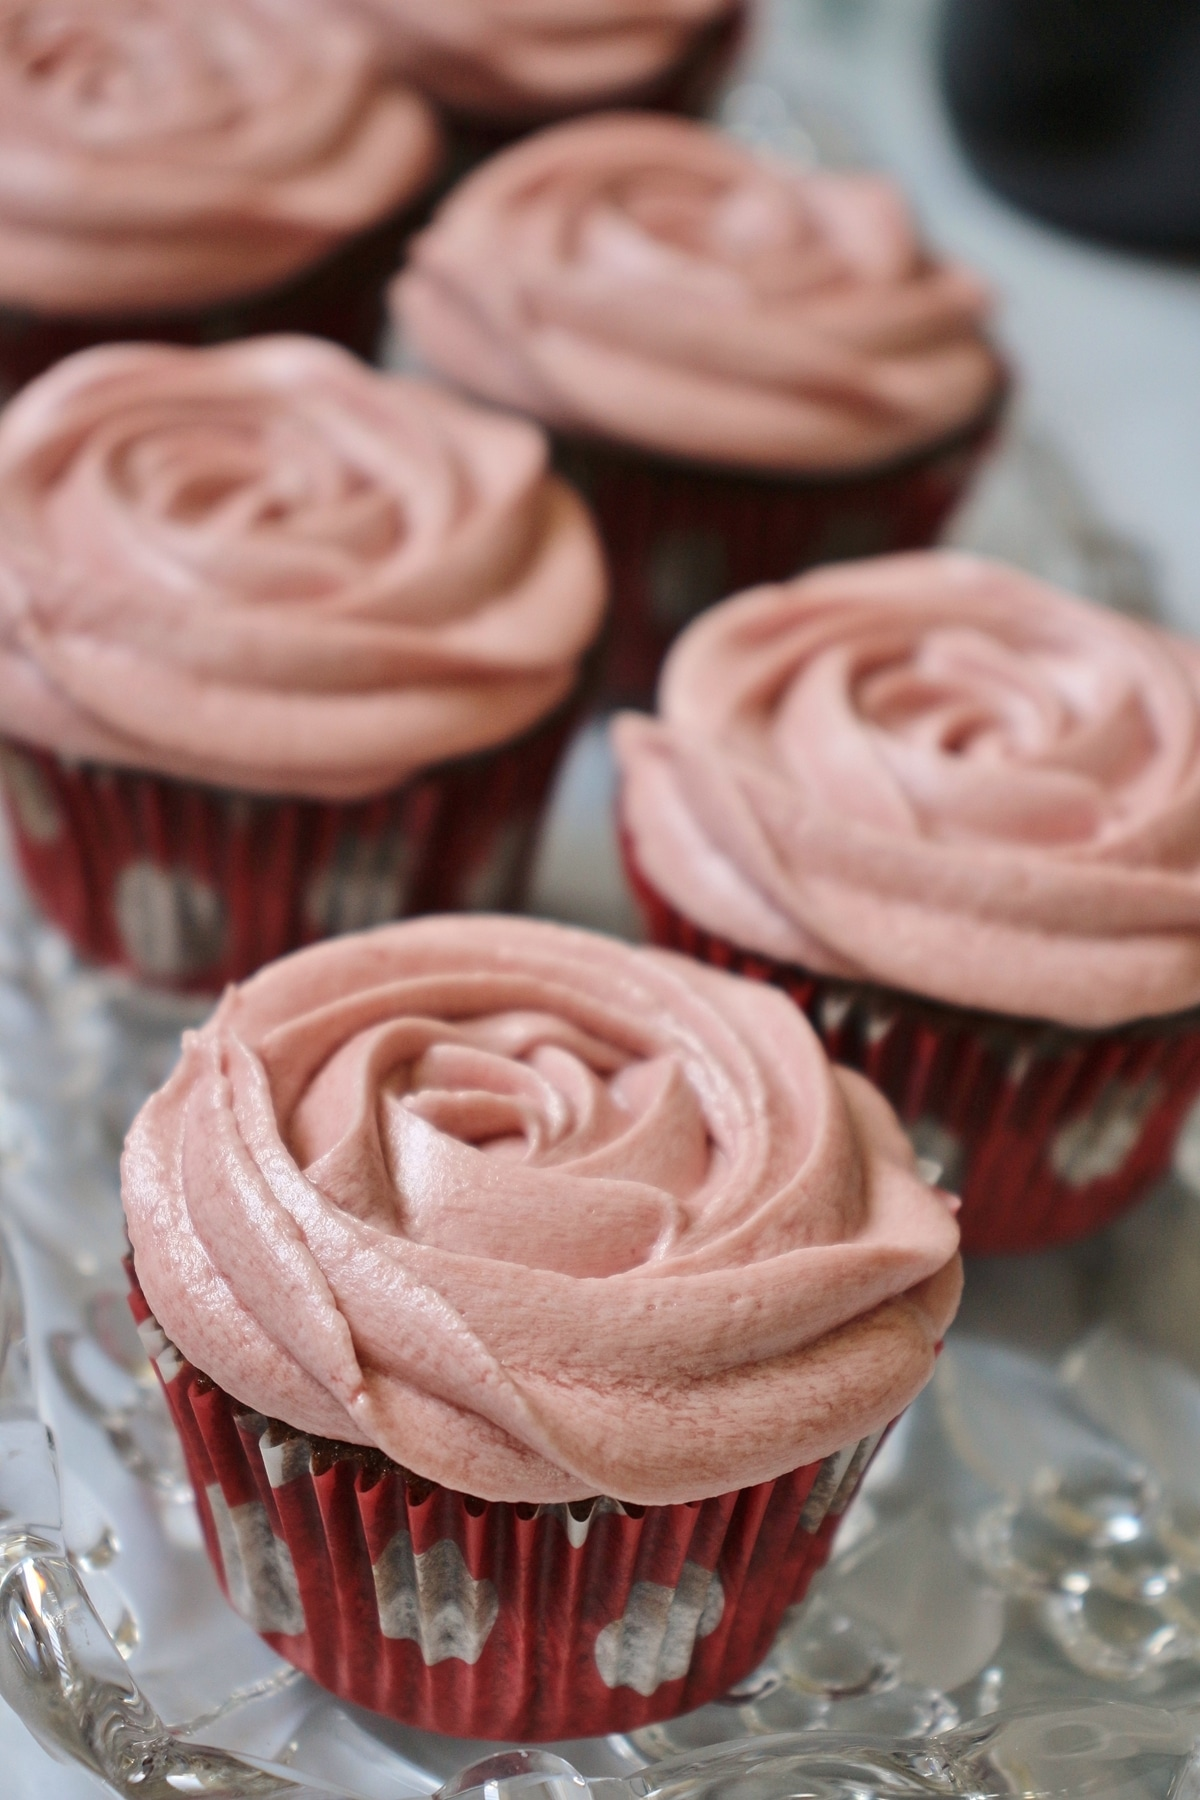 6 chocolate cupcakes with red wine buttercream frosting on a glass tray